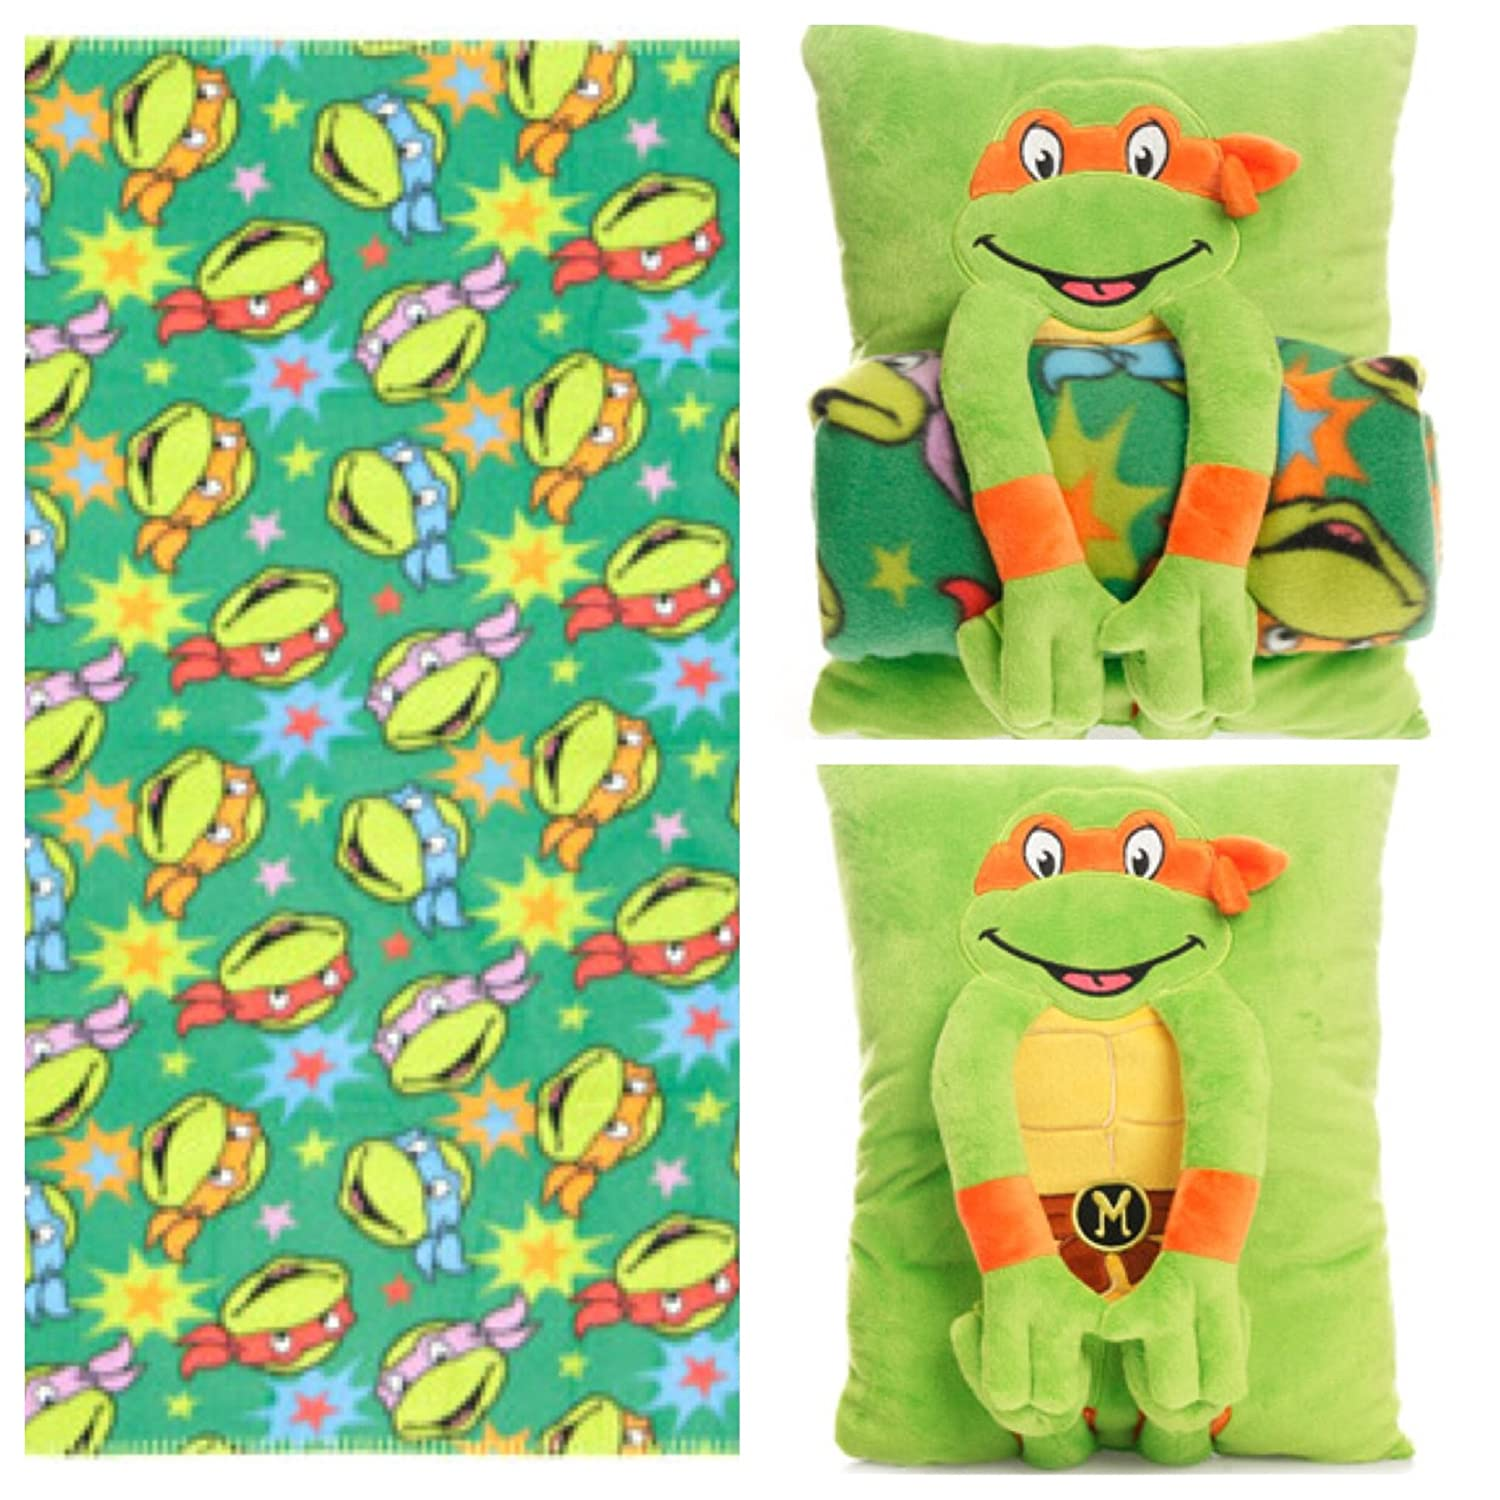 Nickelodeon Teenage Mutant Ninja Turtles Cuddle Time Snuggle Buddy Pillow / Blanket Set рюкзак sprayground teenage mutant ninja grillz backpack b190b leonardo blue